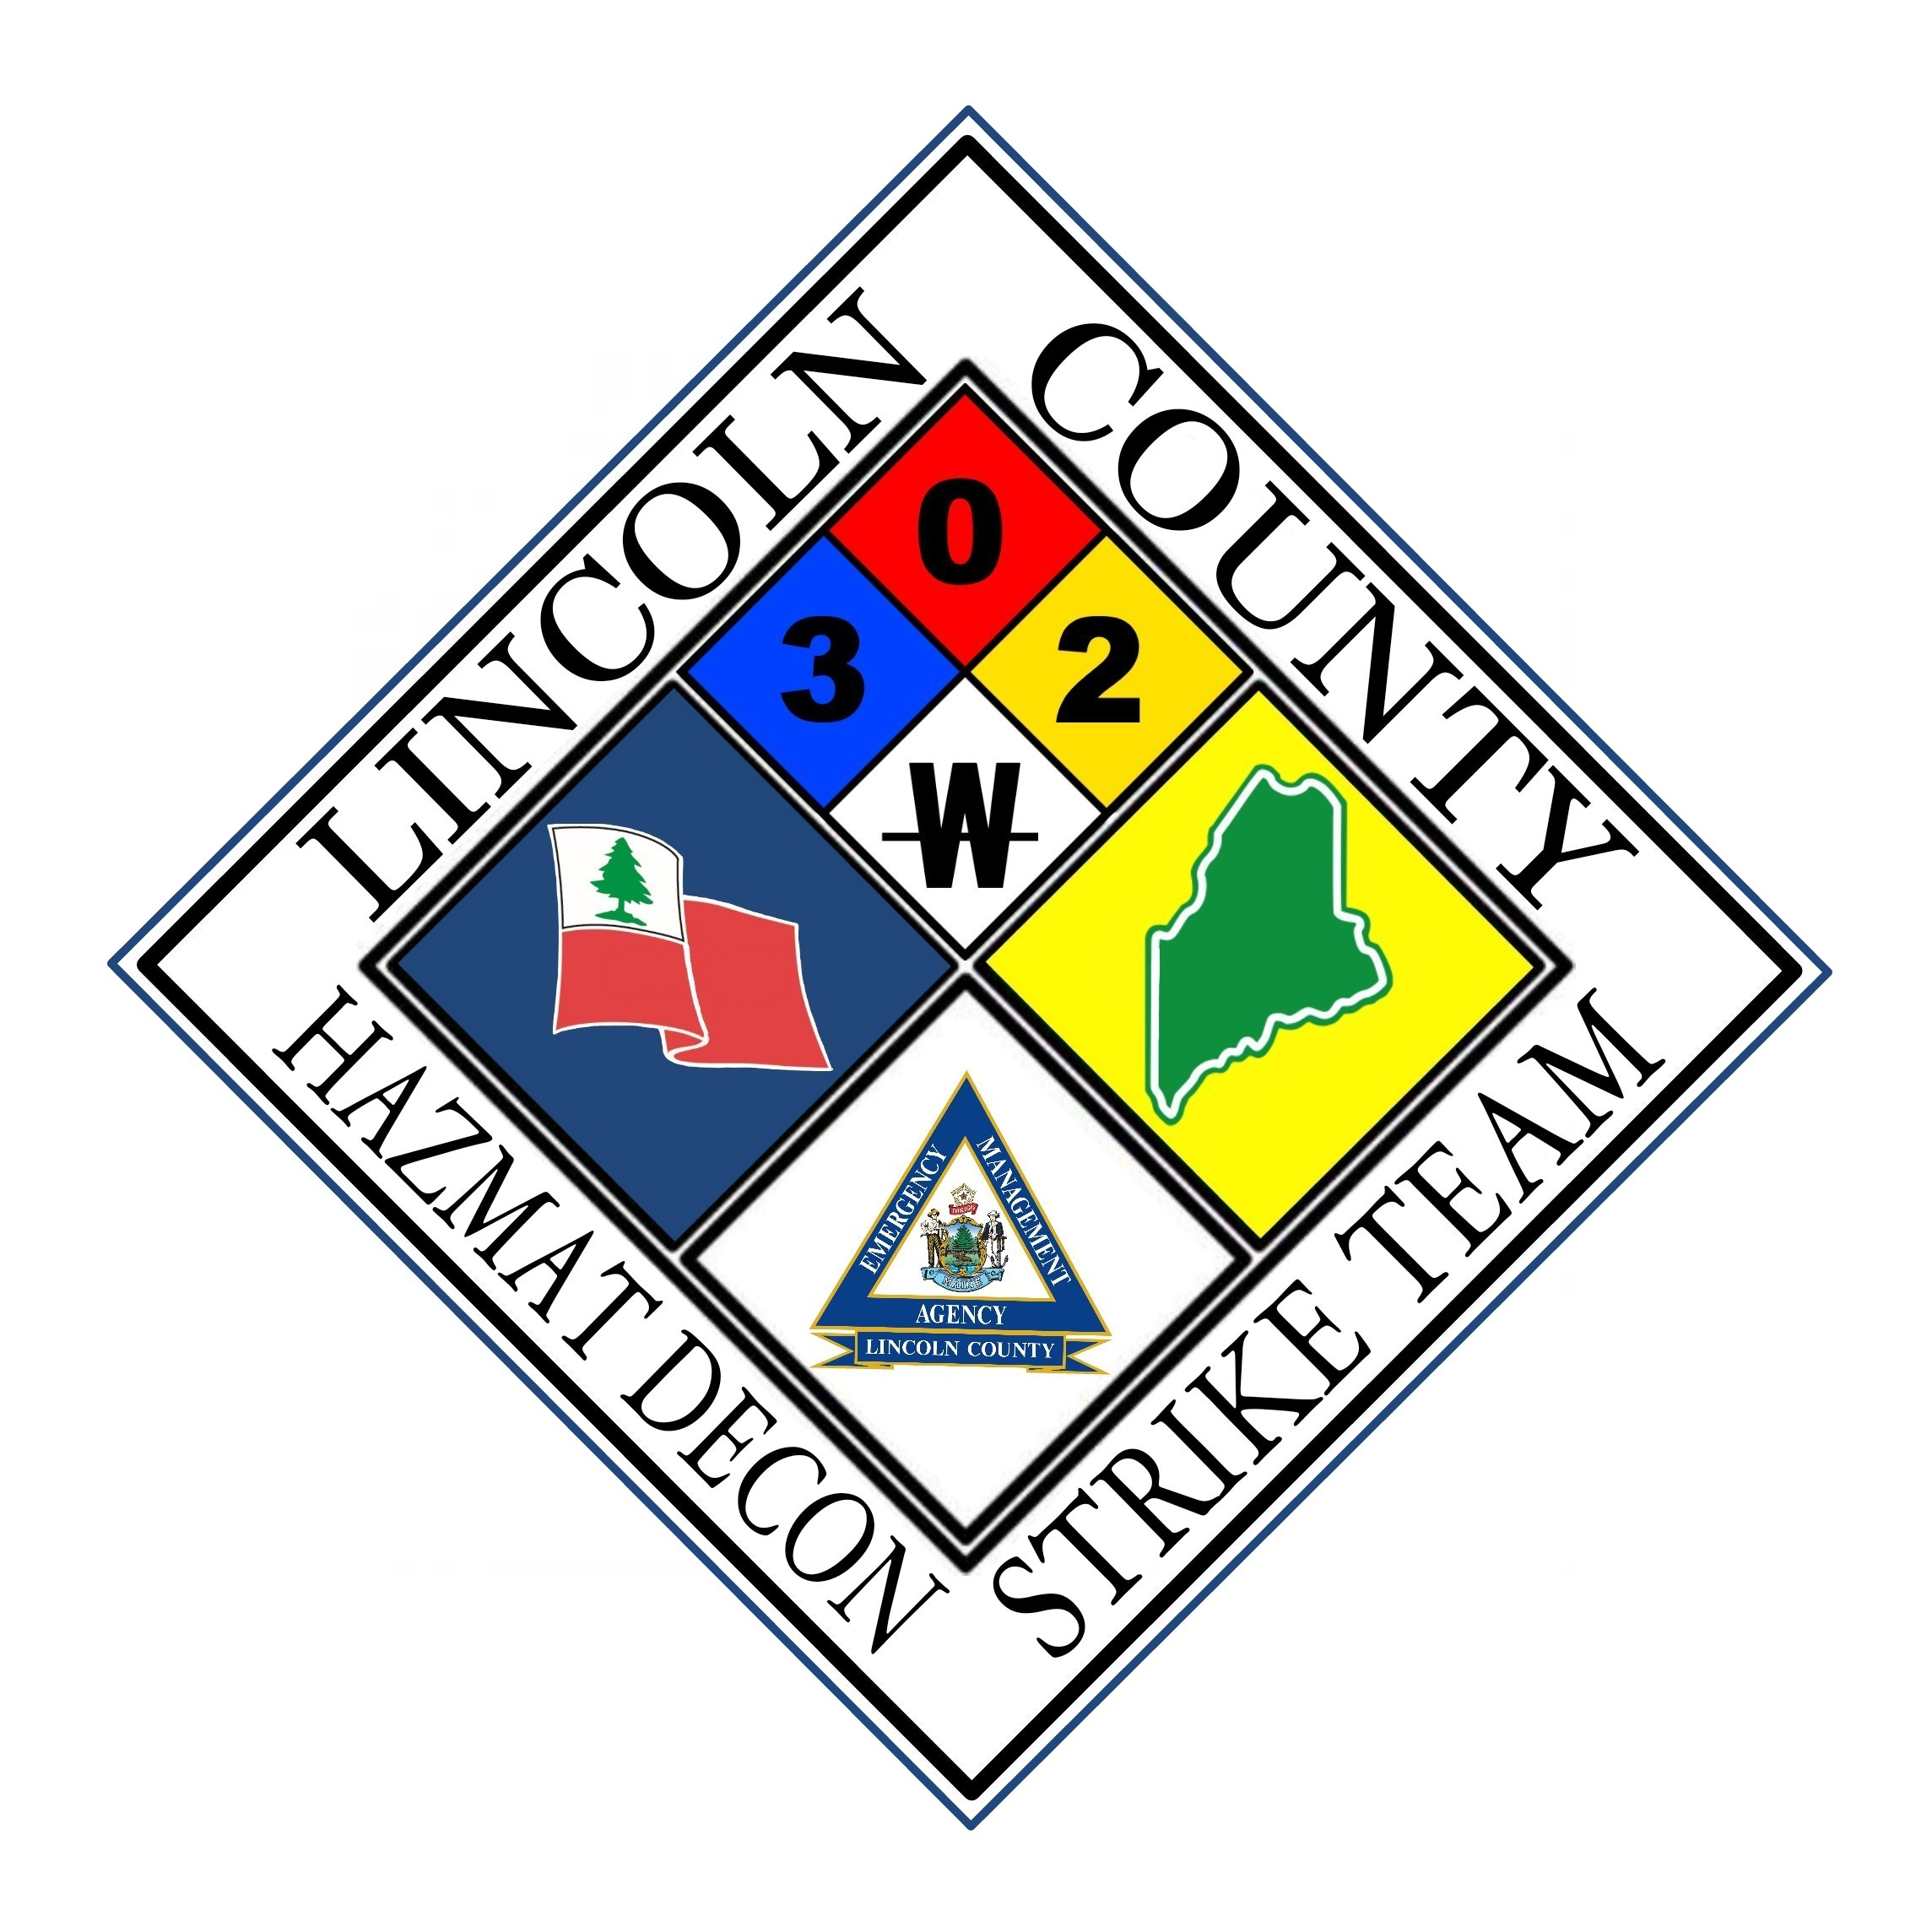 Lincoln County Hazmat Patch 06.2017 (2)